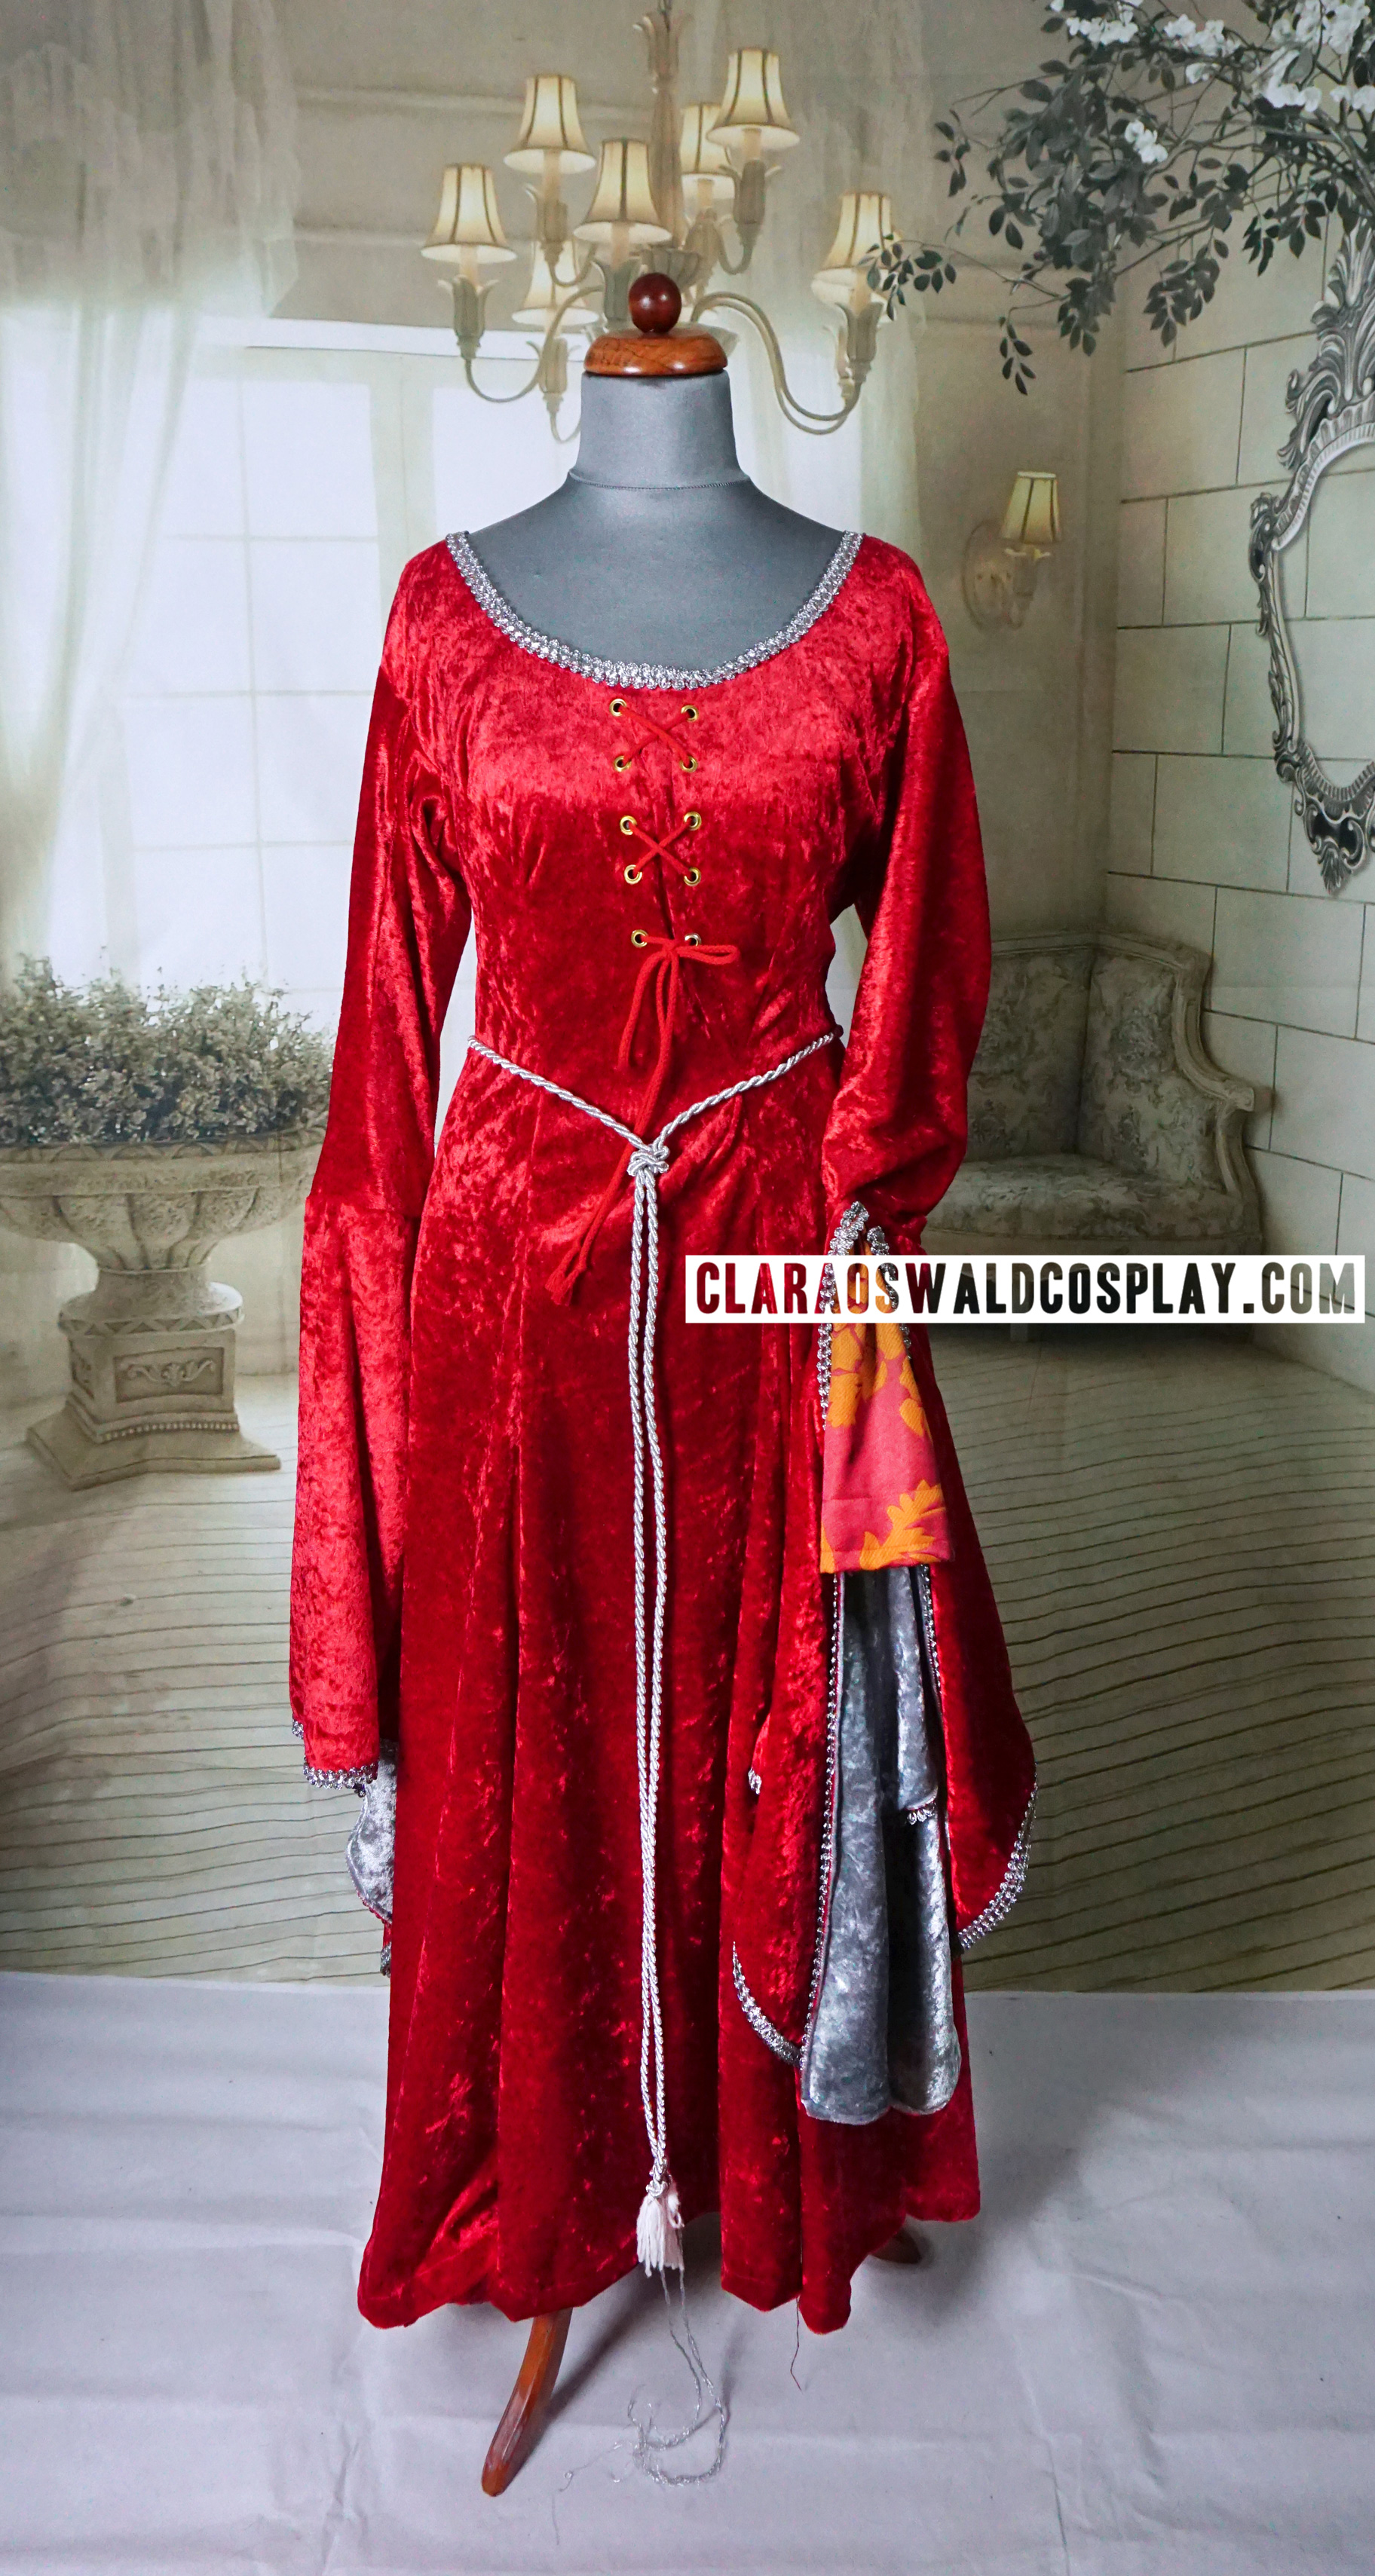 An affordable version of Clara Oswald's Robot of Sherwood custom made medieval dress